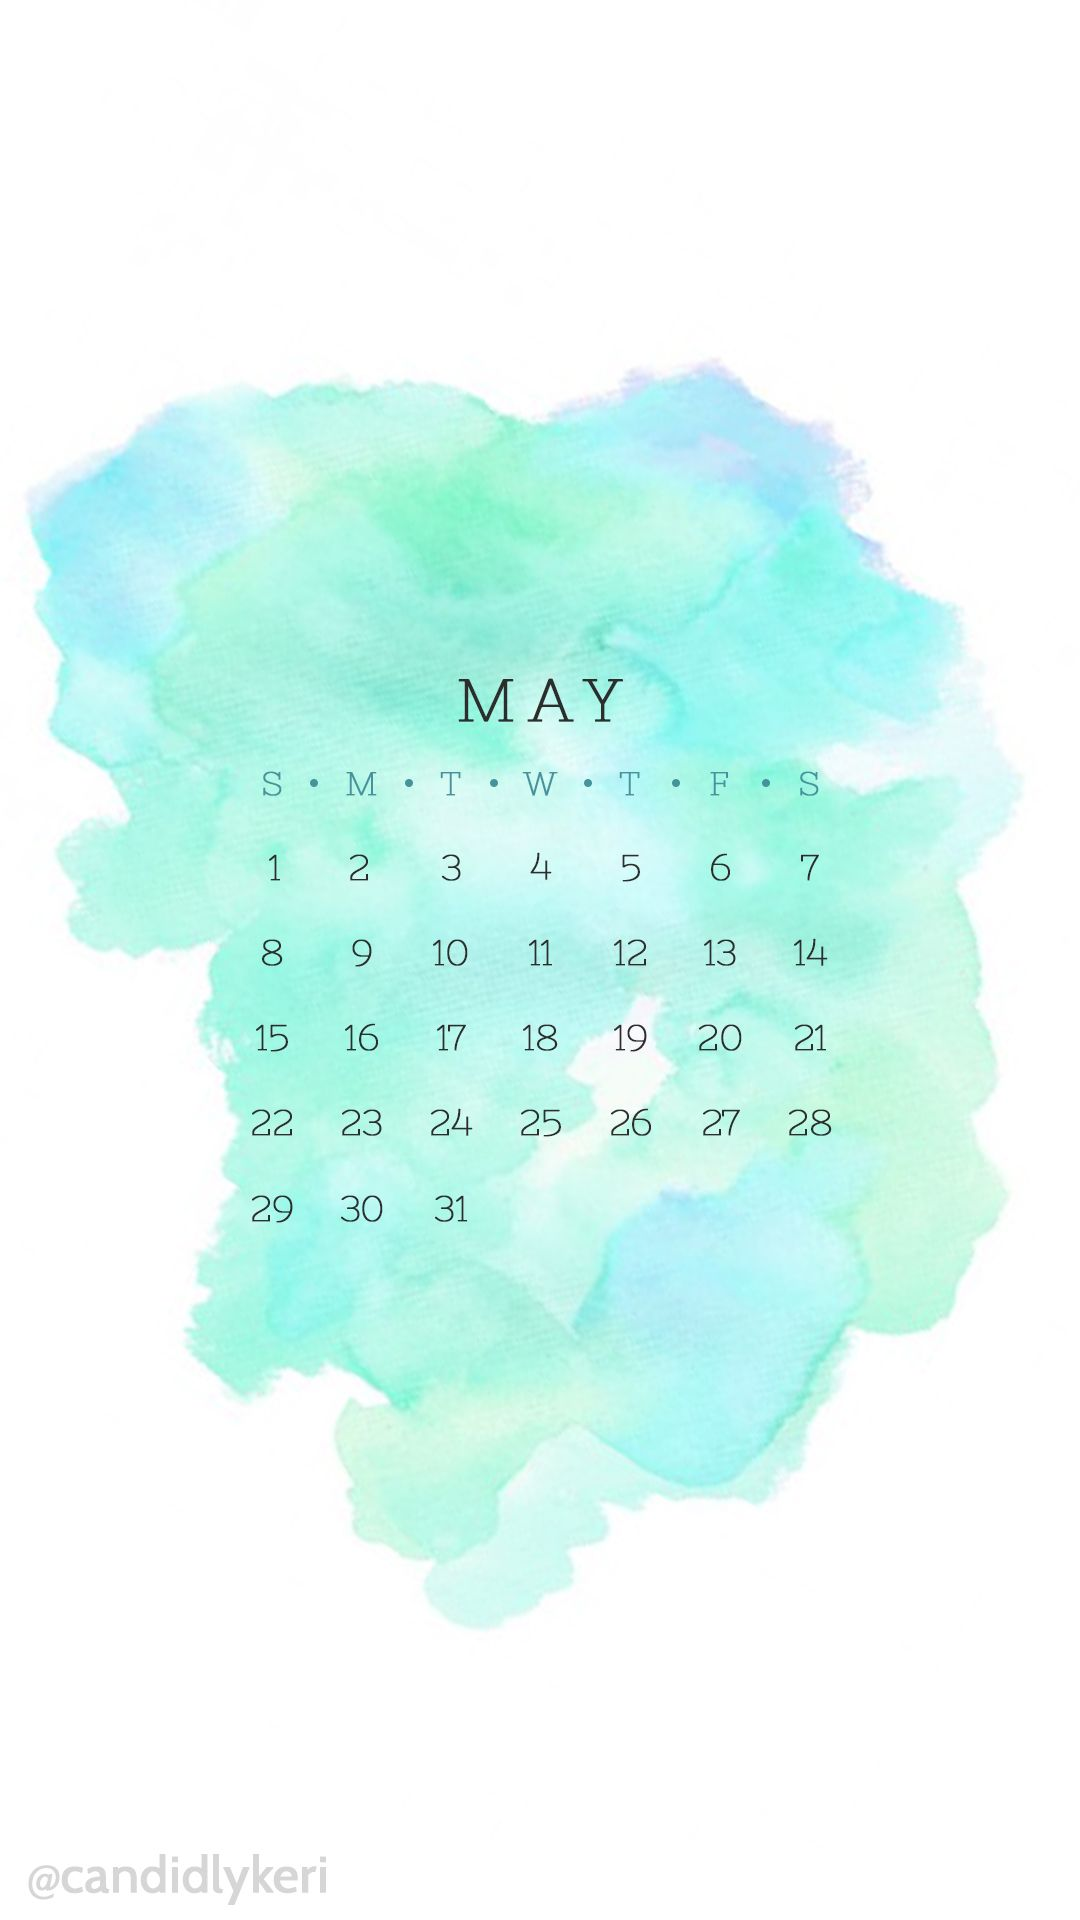 Calendar Wallpaper May : Blue turquoise and green may calendar wallpaper free